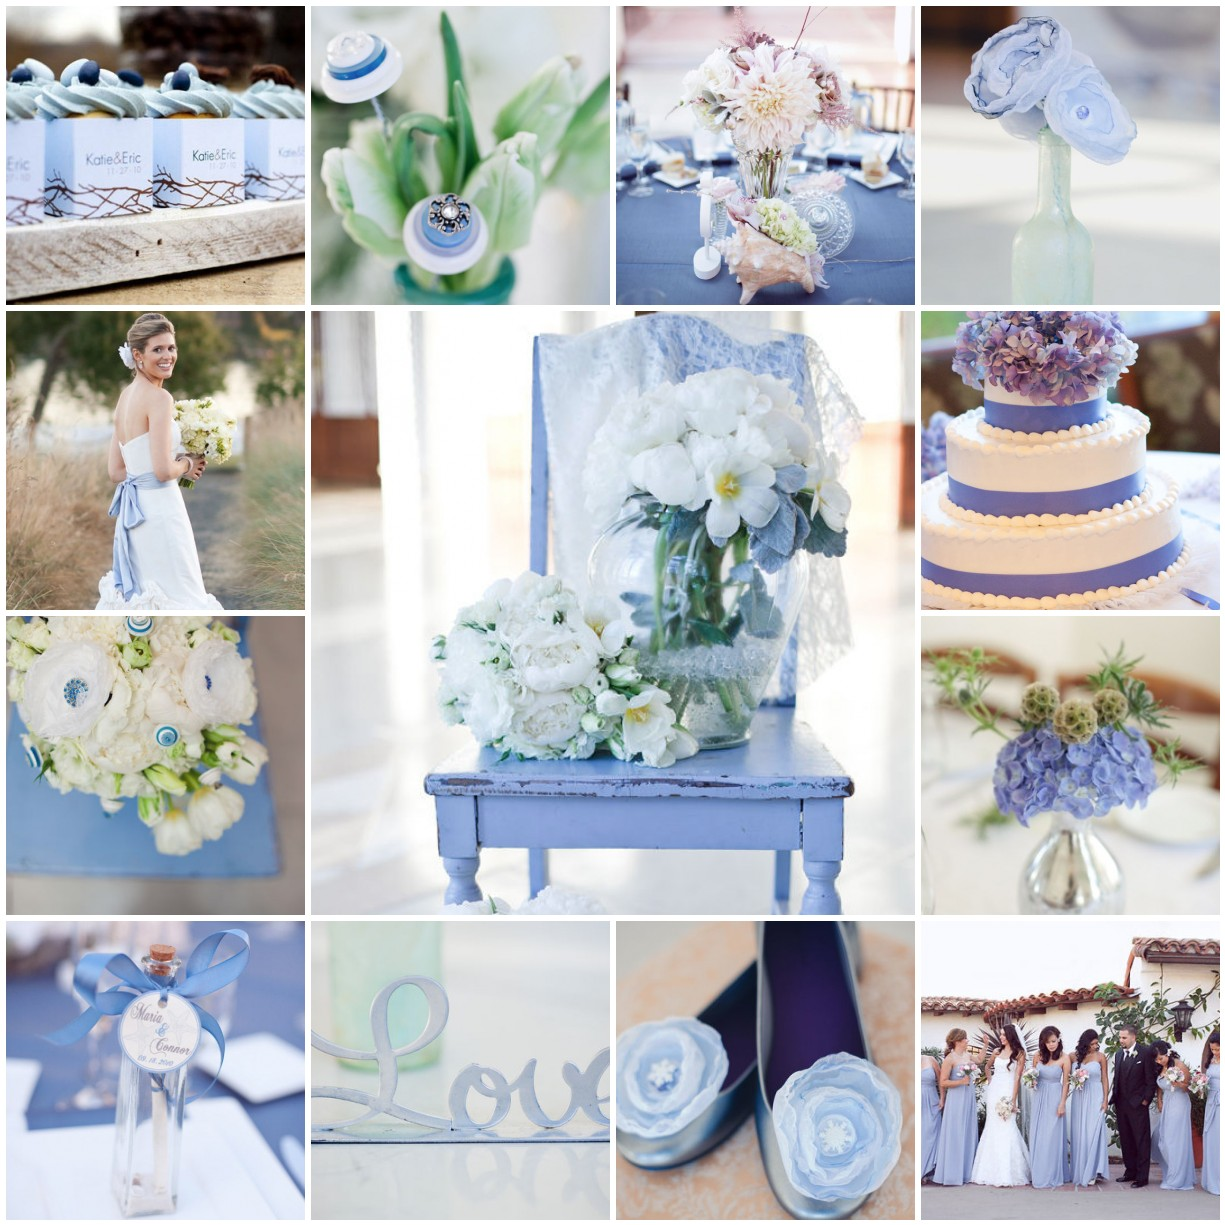 Periwinkle Perfection | The Blushing Bride